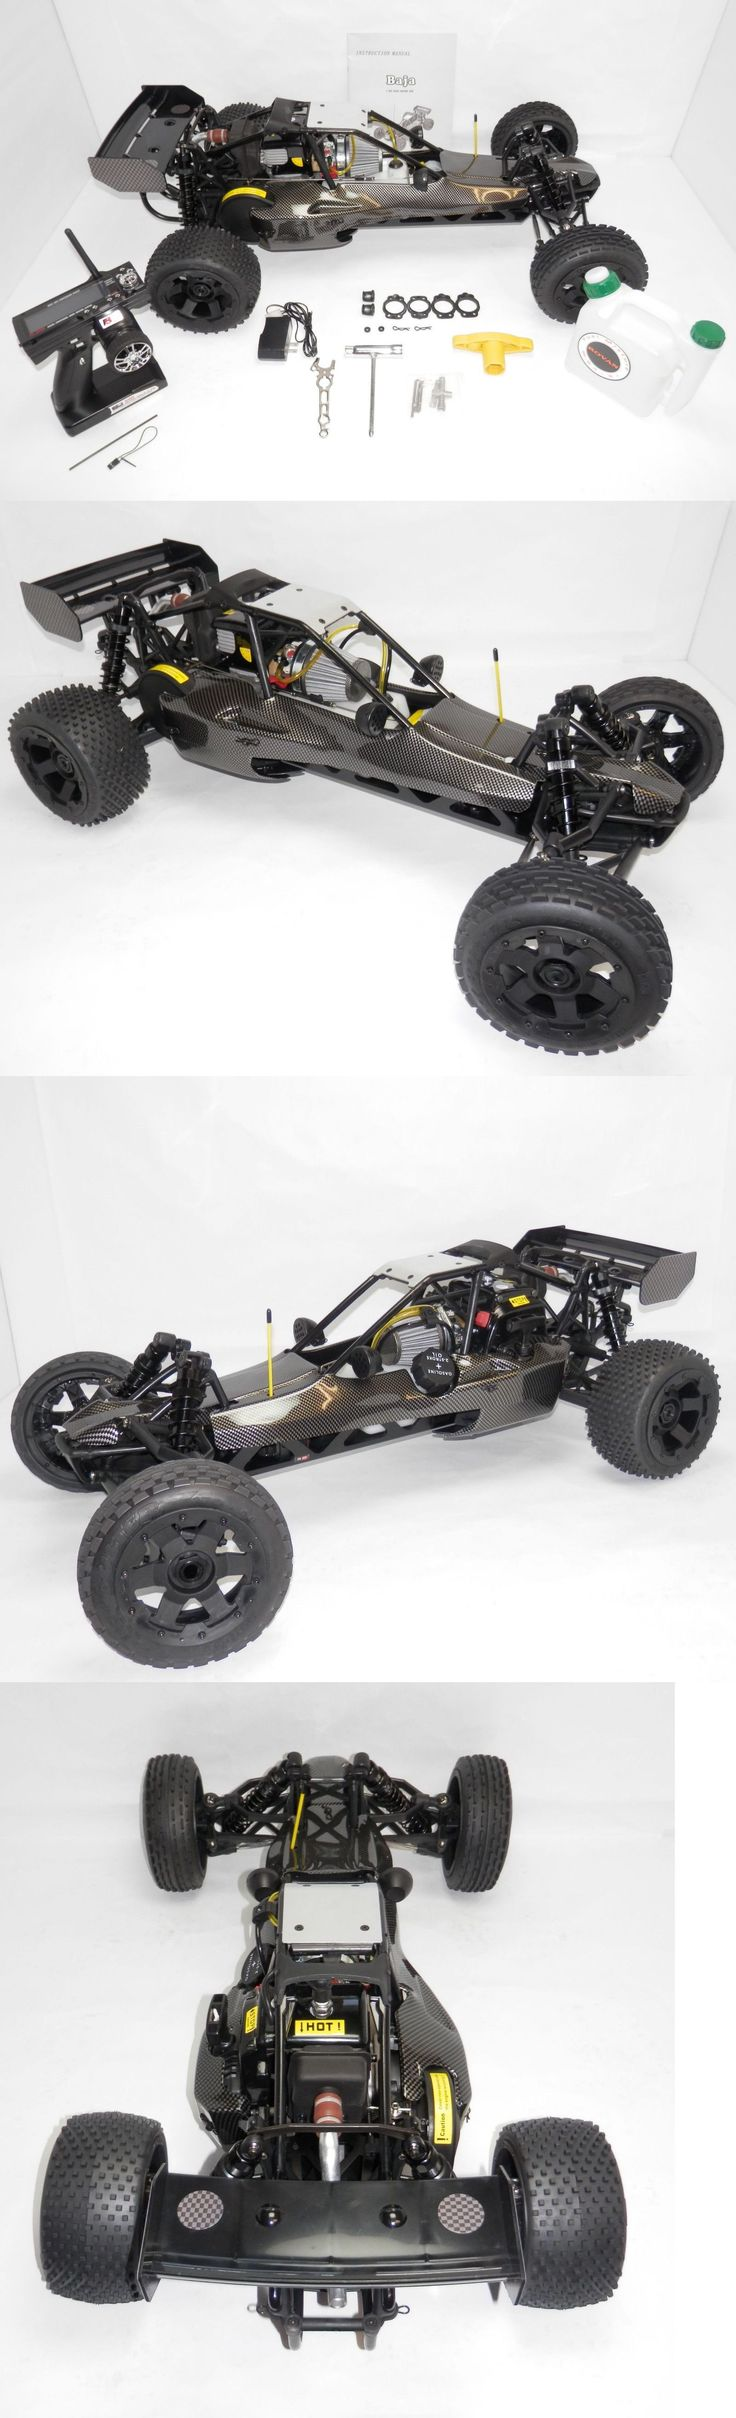 Cars Trucks and Motorcycles 182183: Rovan Rc Baja 290A 29Cc Radio Controlled Buggy - Gas - 5B Ss 1 5Th Scale - Gt3b -> BUY IT NOW ONLY: $425 on eBay! #RadioControl #radiocontrolcars